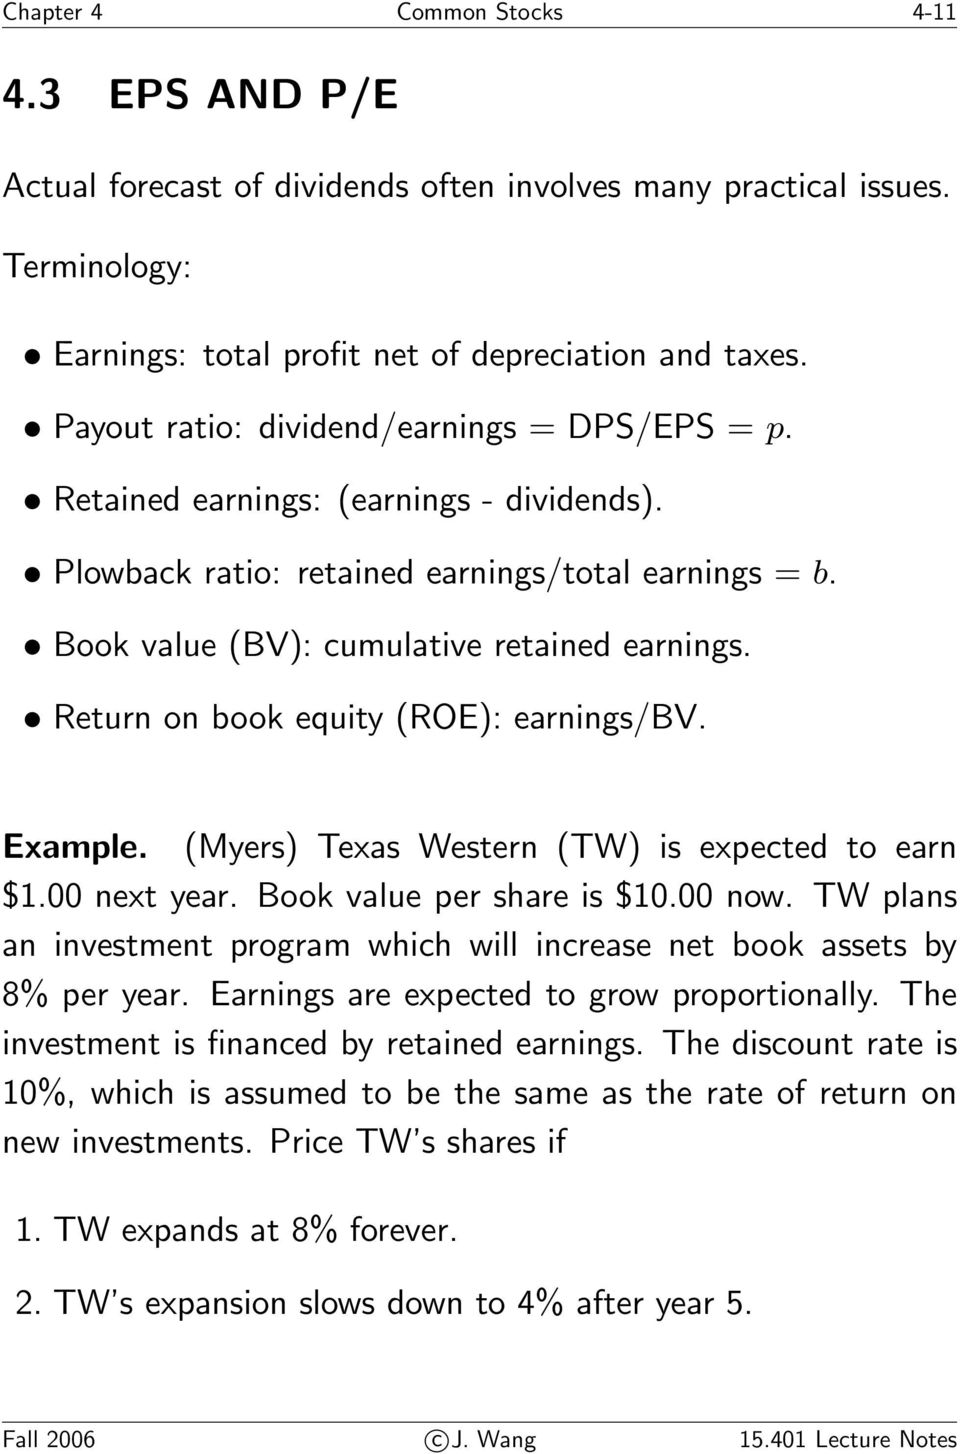 Return on book equity (ROE): earnings/bv. Example. (Myers) Texas Western (TW) is expected to earn $1.00 next year. Book value per share is $10.00 now.